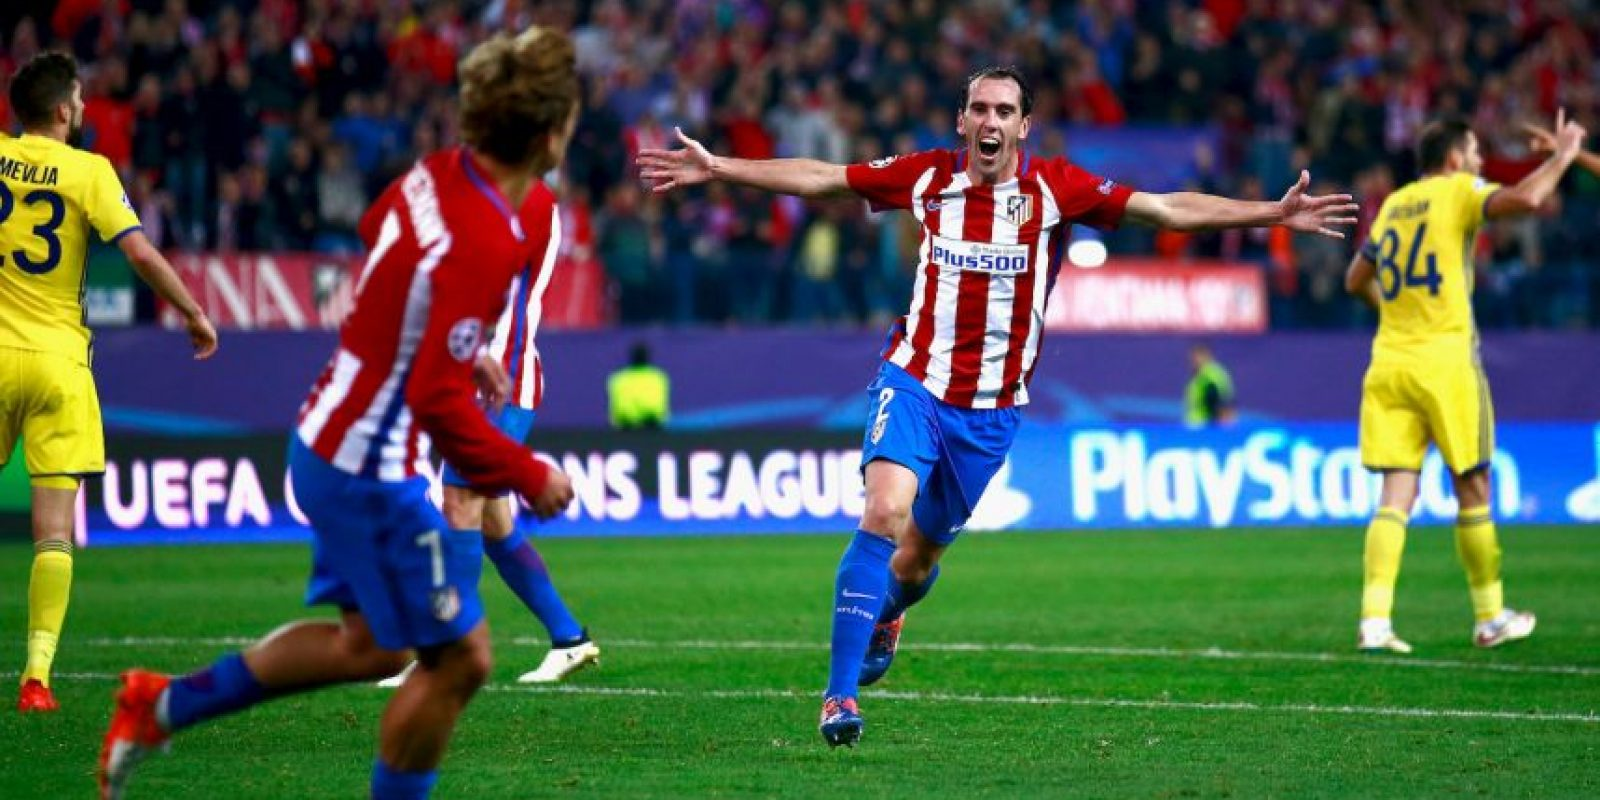 Diego Godín (Atlético de Madrid Foto: Getty Images